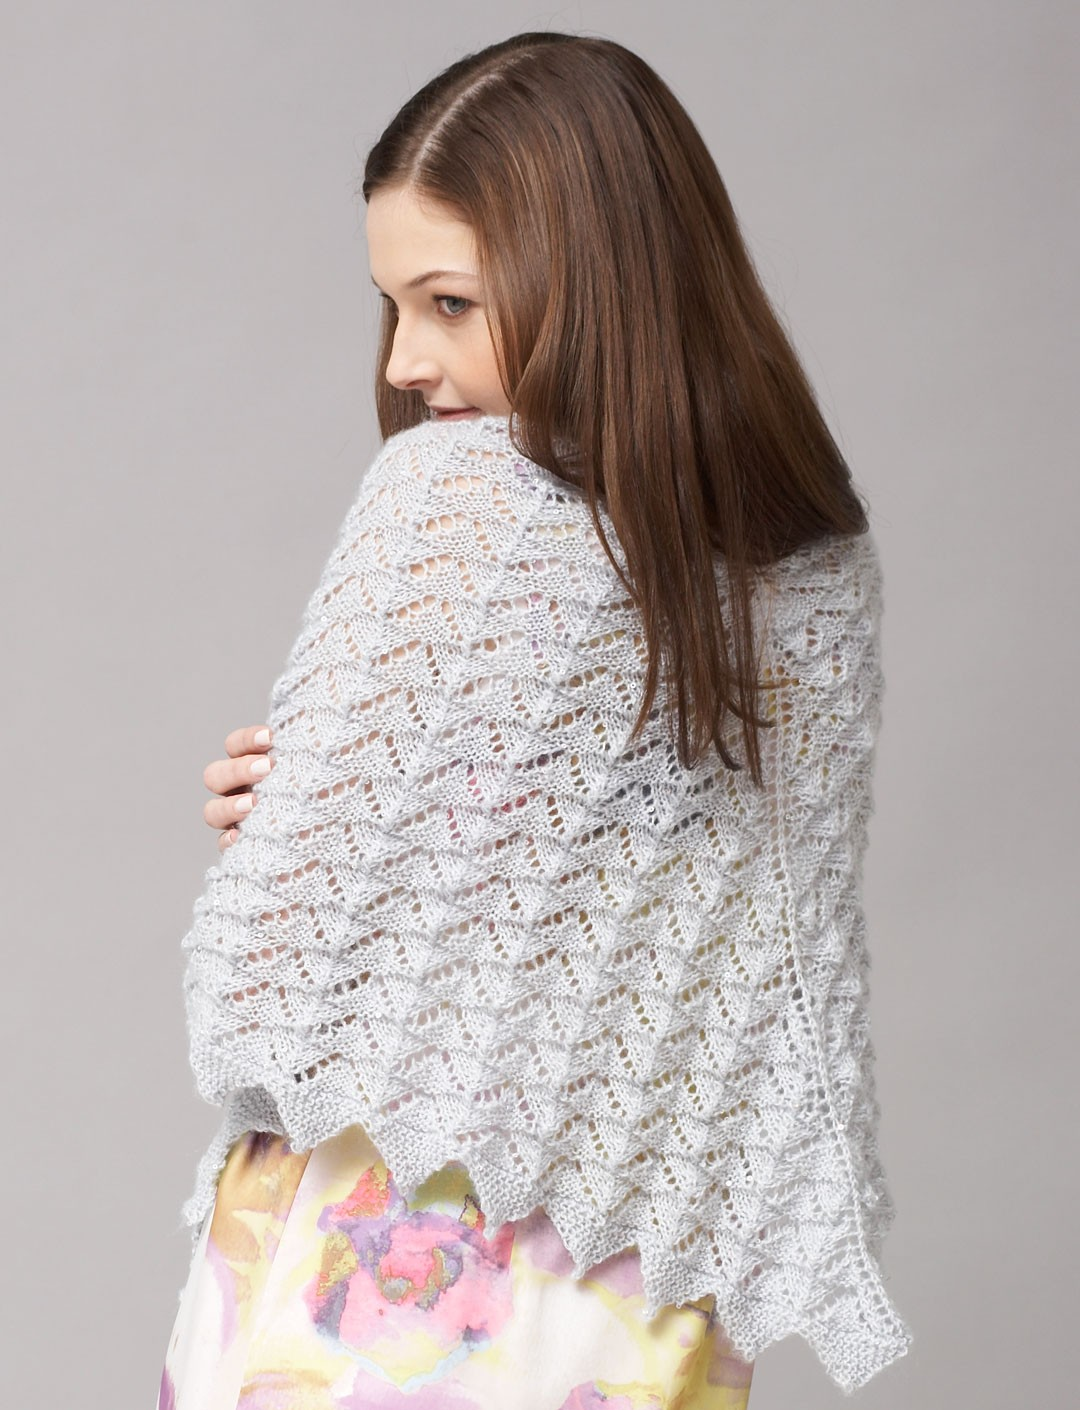 Free Crochet Patterns Using Patons Lace Yarn : Patons Chevron Lace Shawl or Scarf, Knit Pattern ...